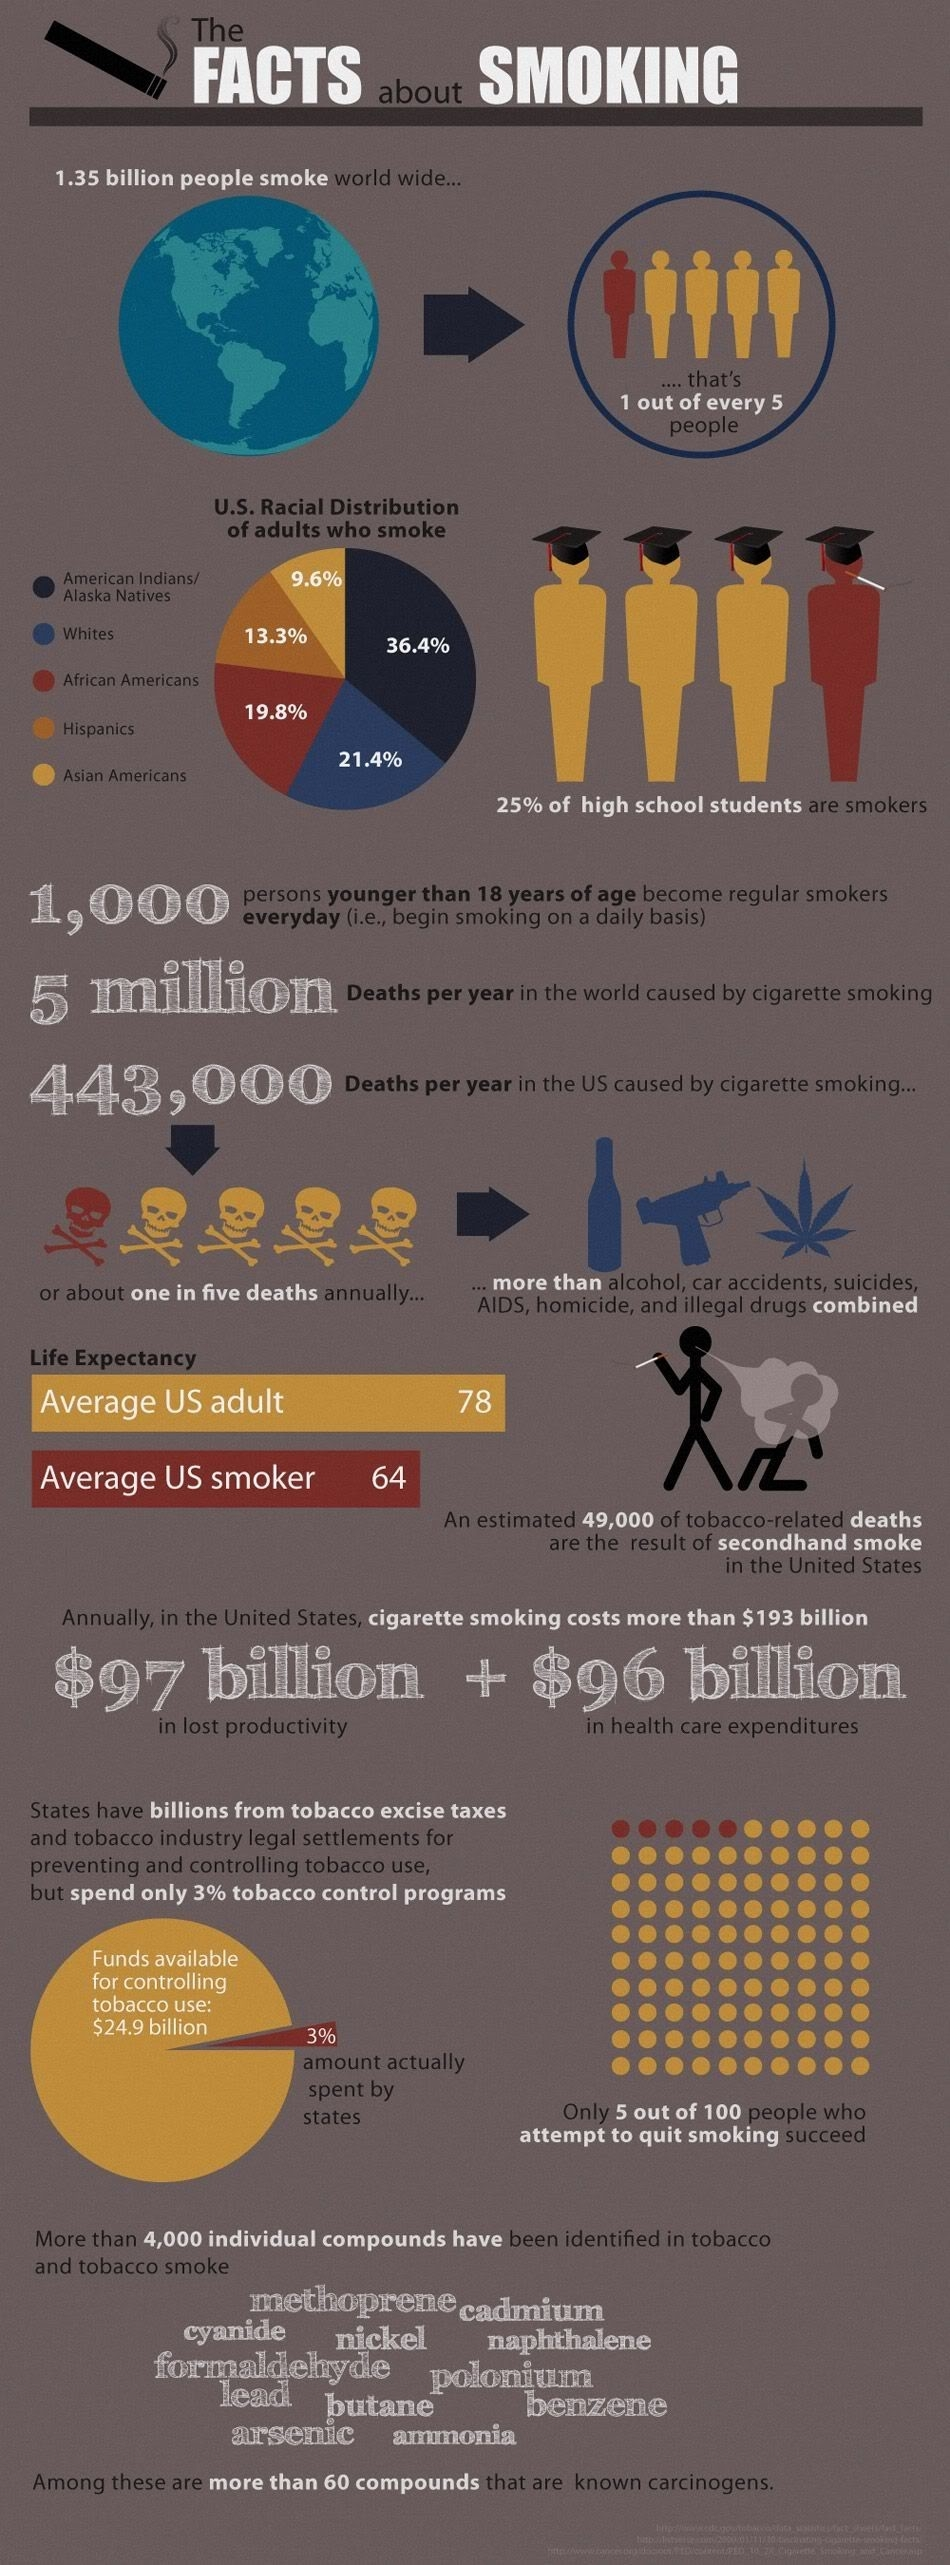 Smoking Facts and Figures